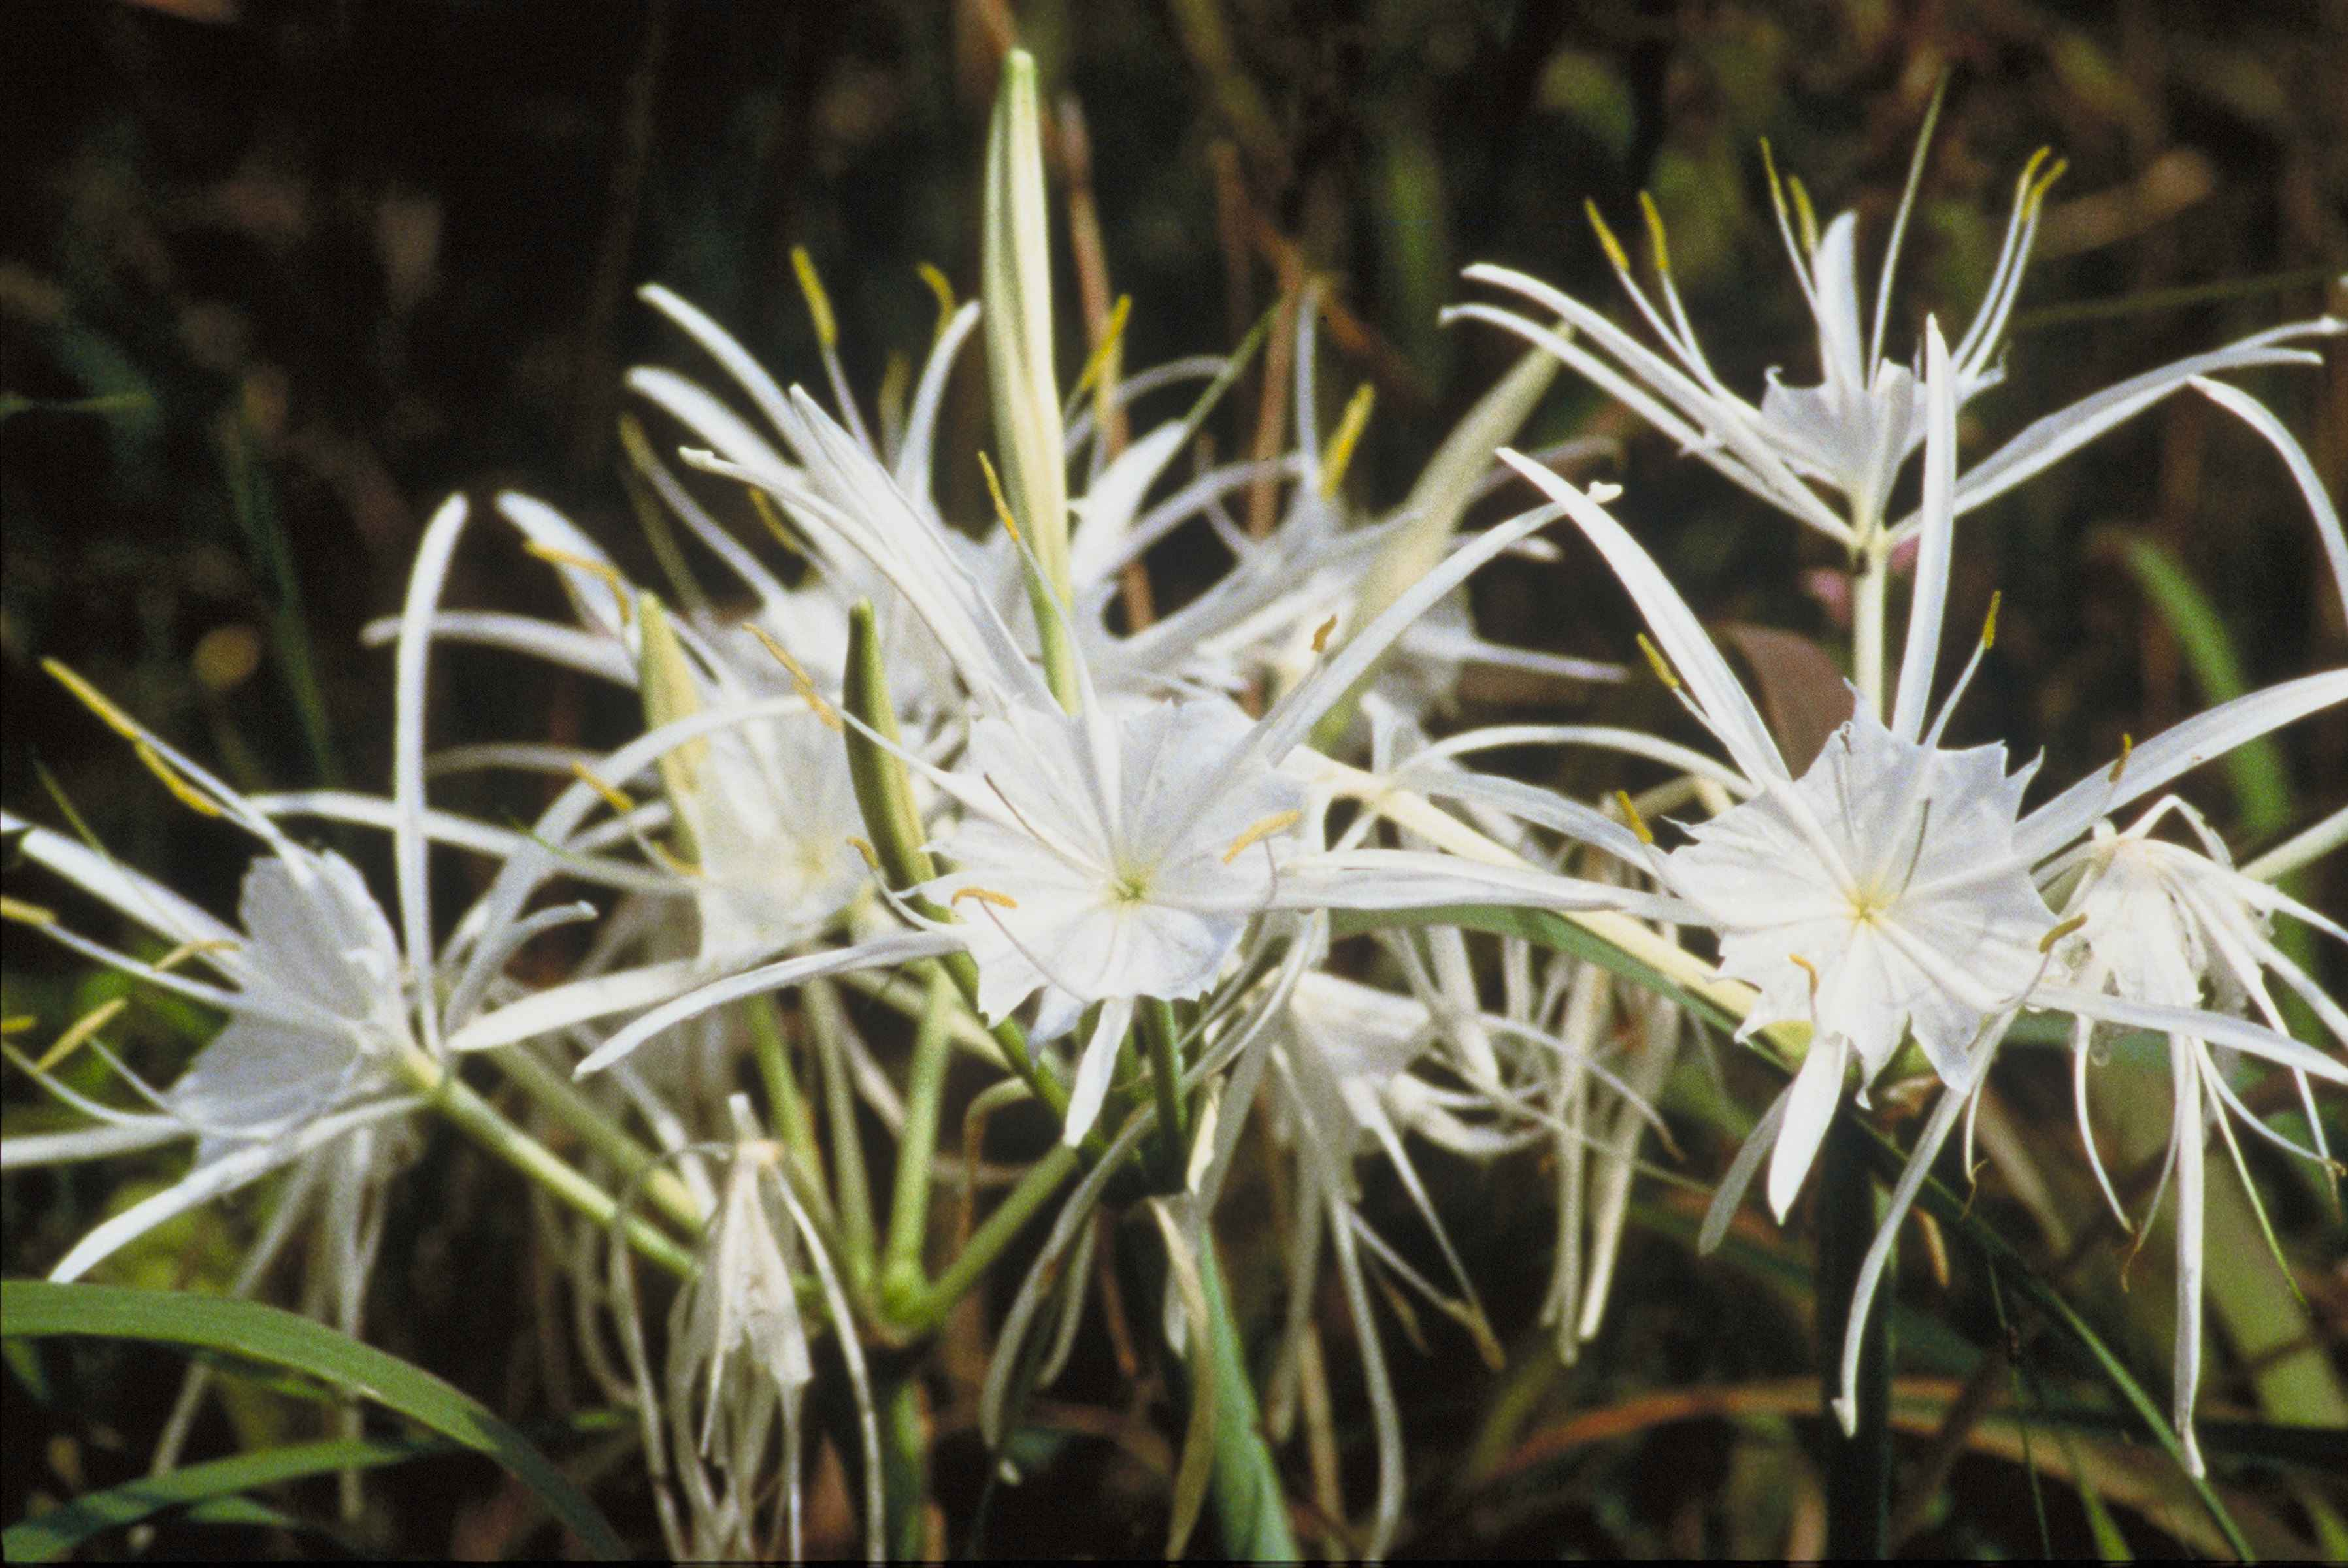 Filespider Lilies Plants Higanbana With White Flowersg